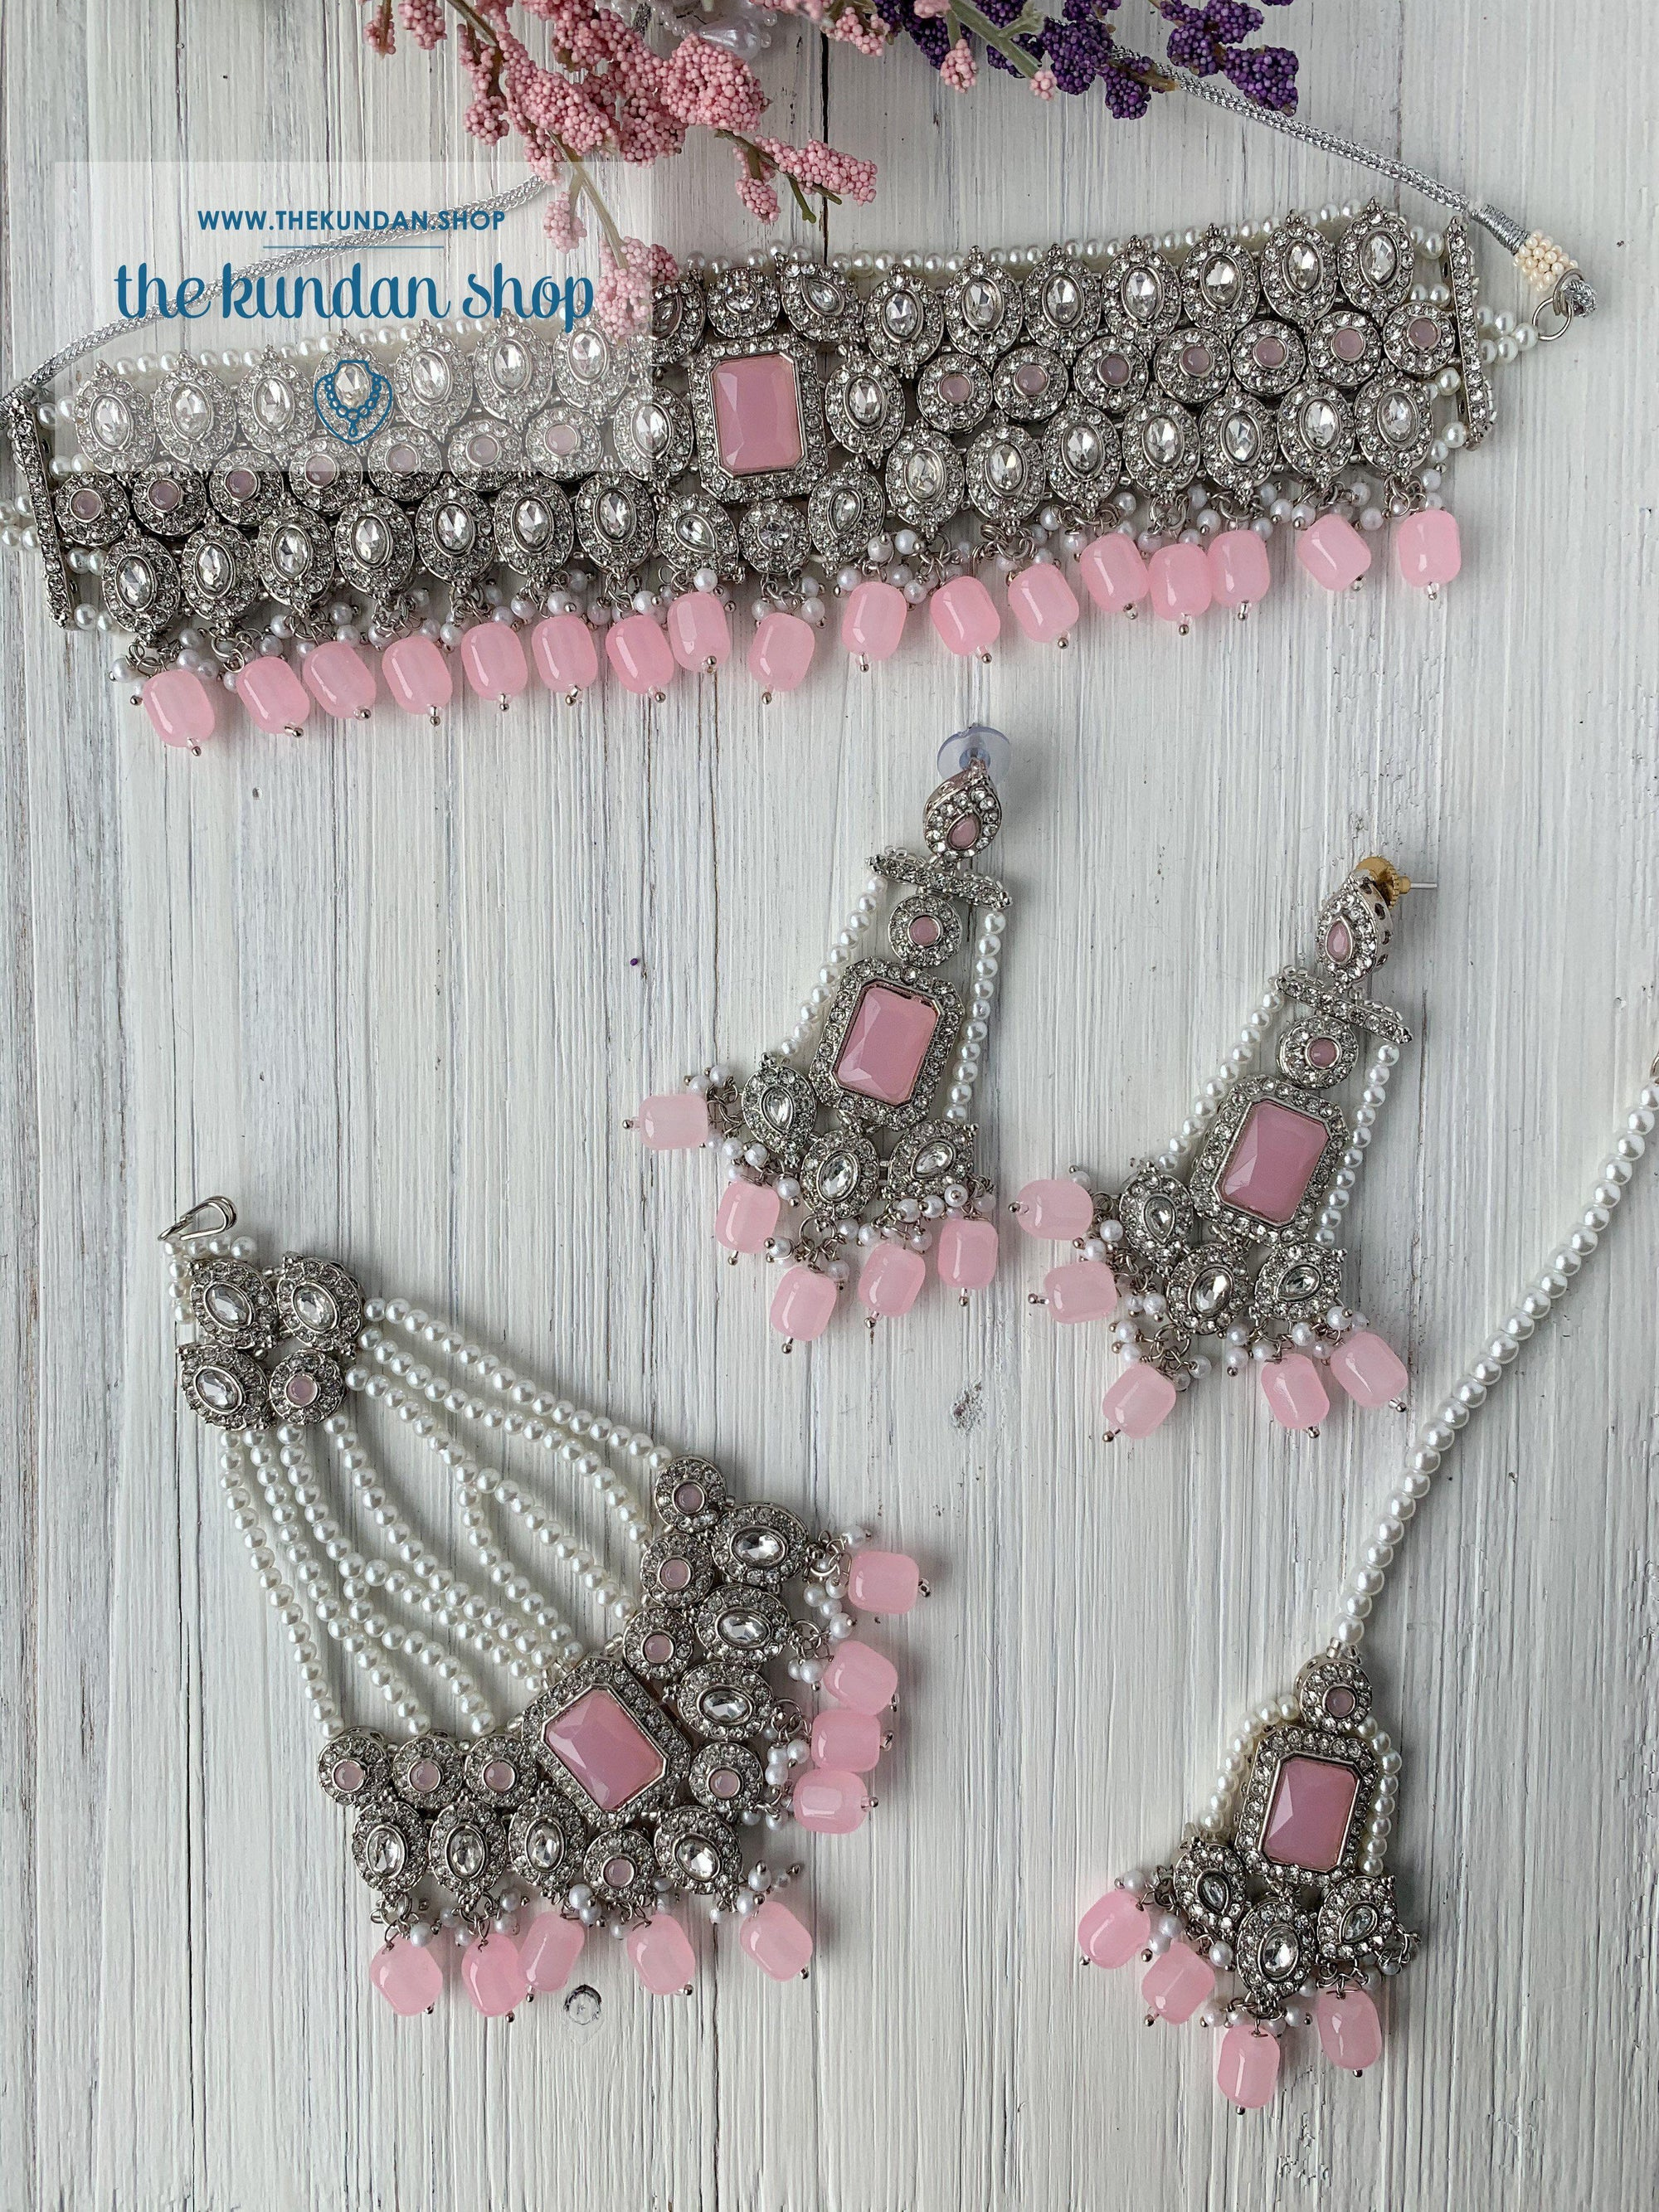 Magnificent Drops in Pink & Silver Necklace Sets THE KUNDAN SHOP